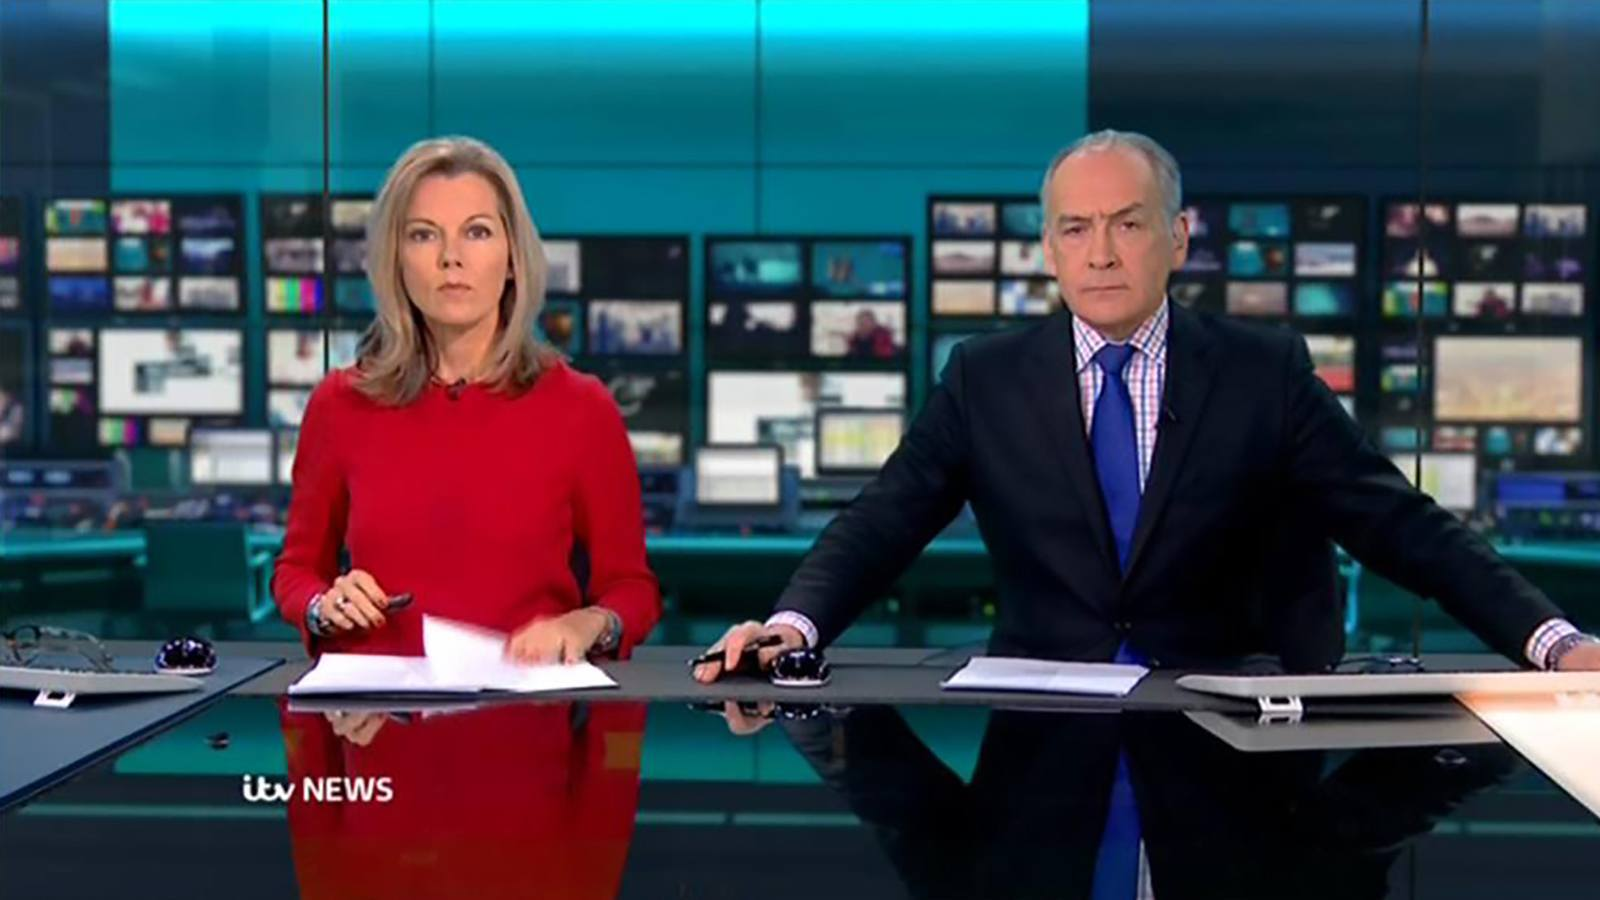 Itv News Virtual Set Designed And Prepared By Lightwell